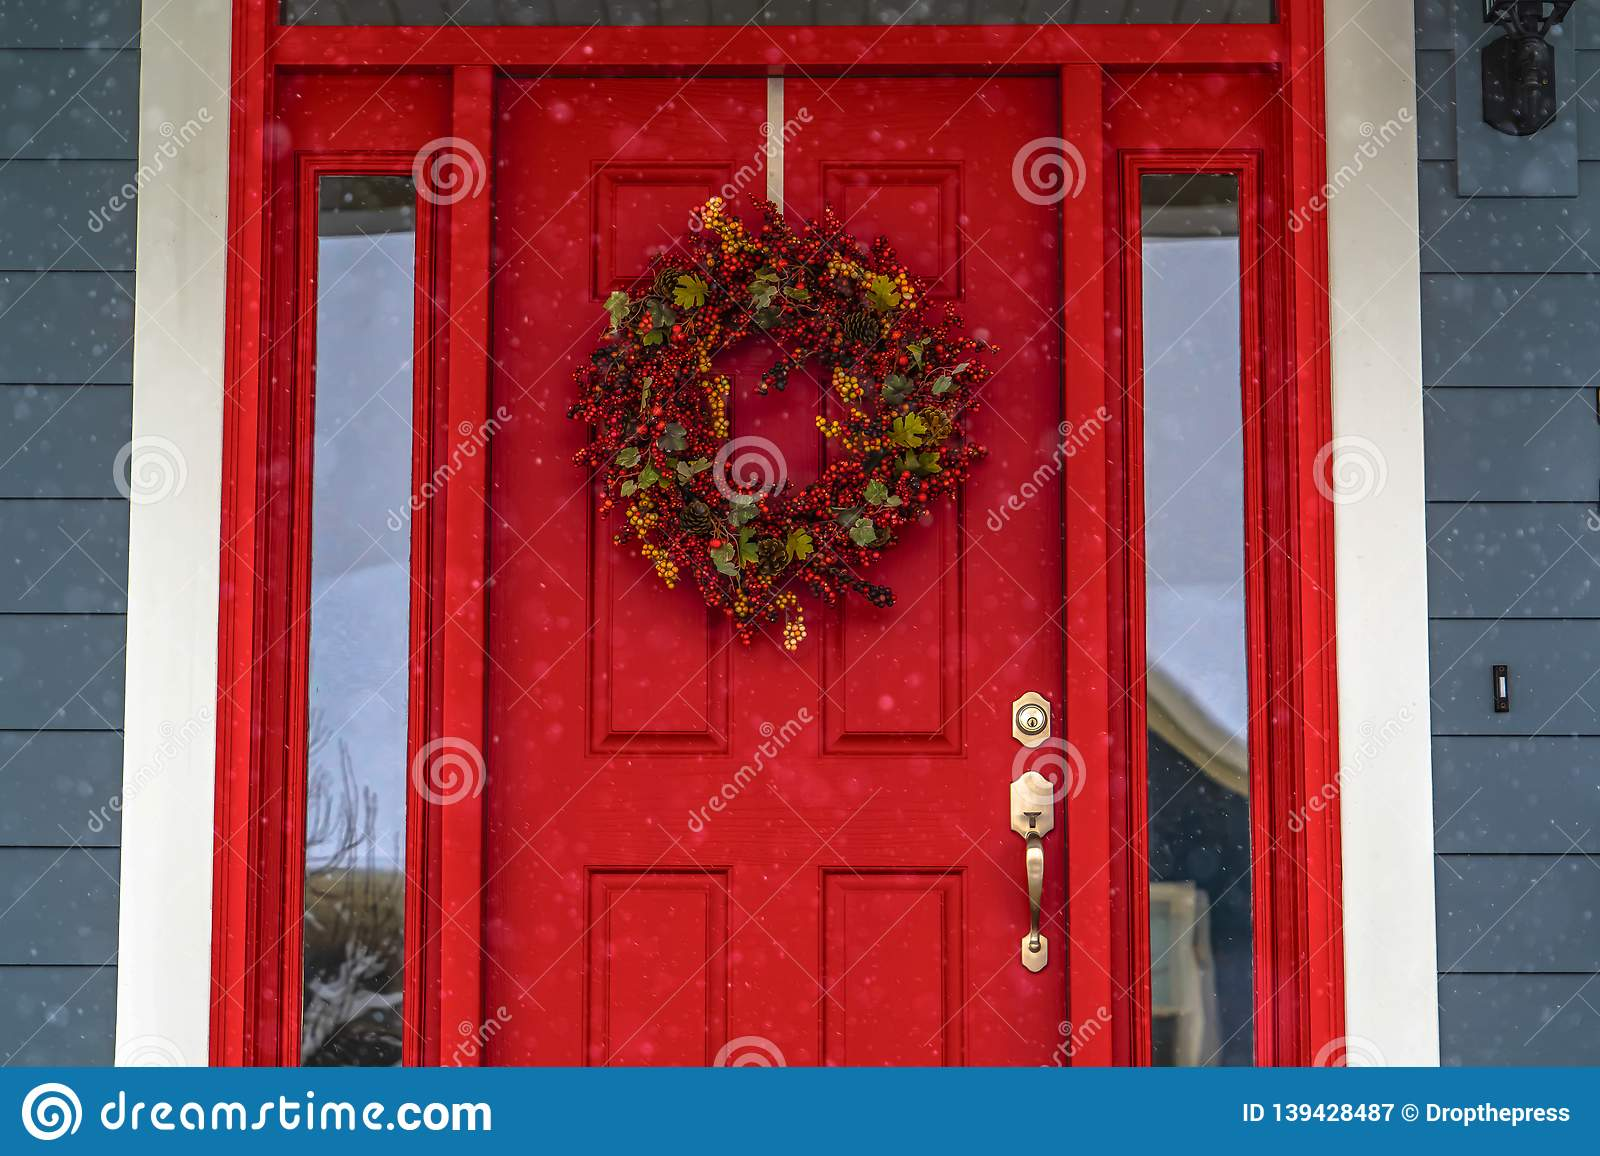 Red Front Door With Wreath And Glass Panes In Utah Stock Image